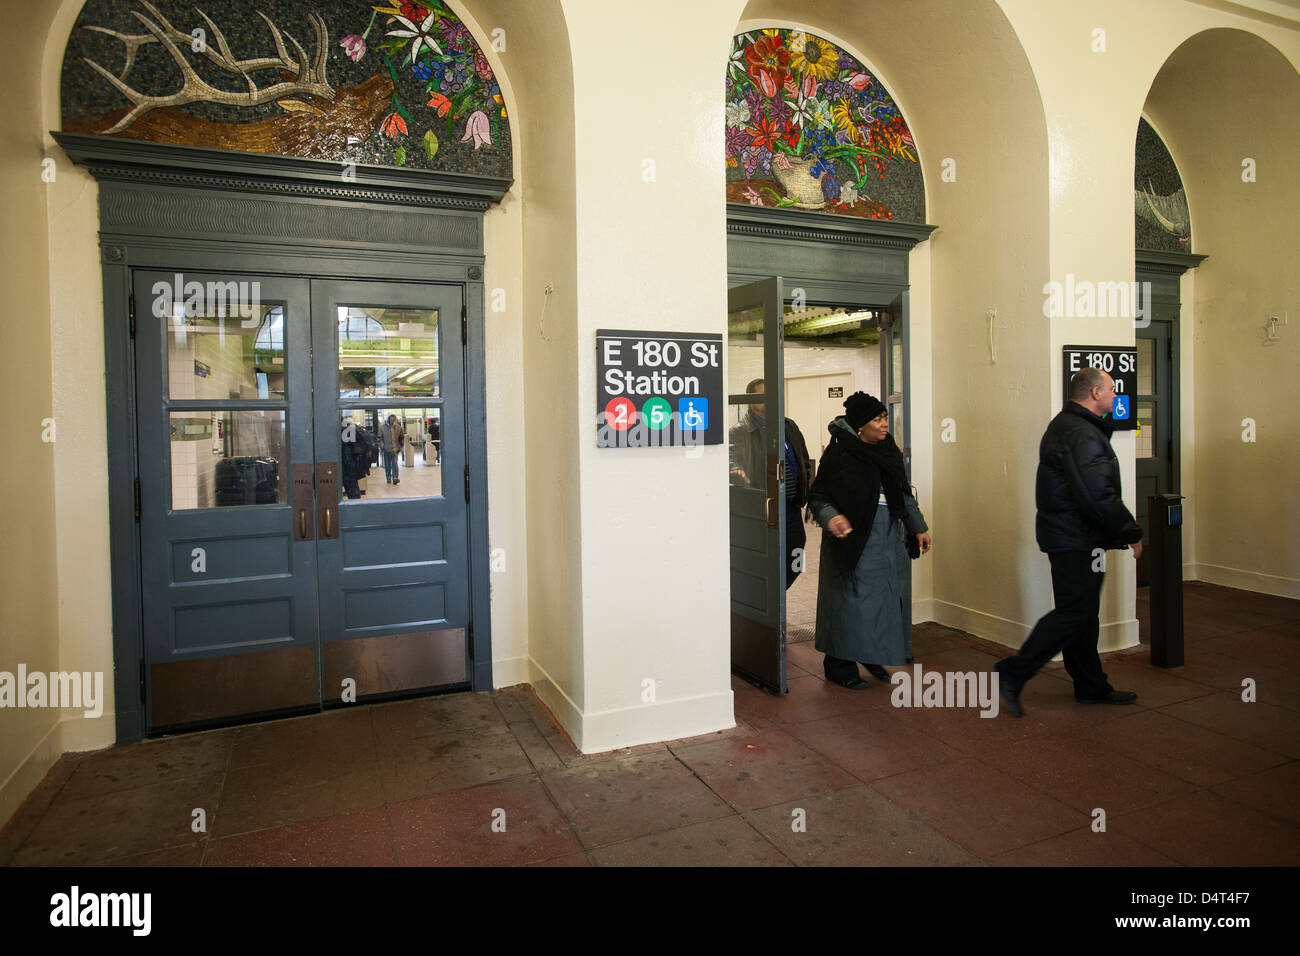 East 180th Street High Resolution Stock Photography And Images Alamy